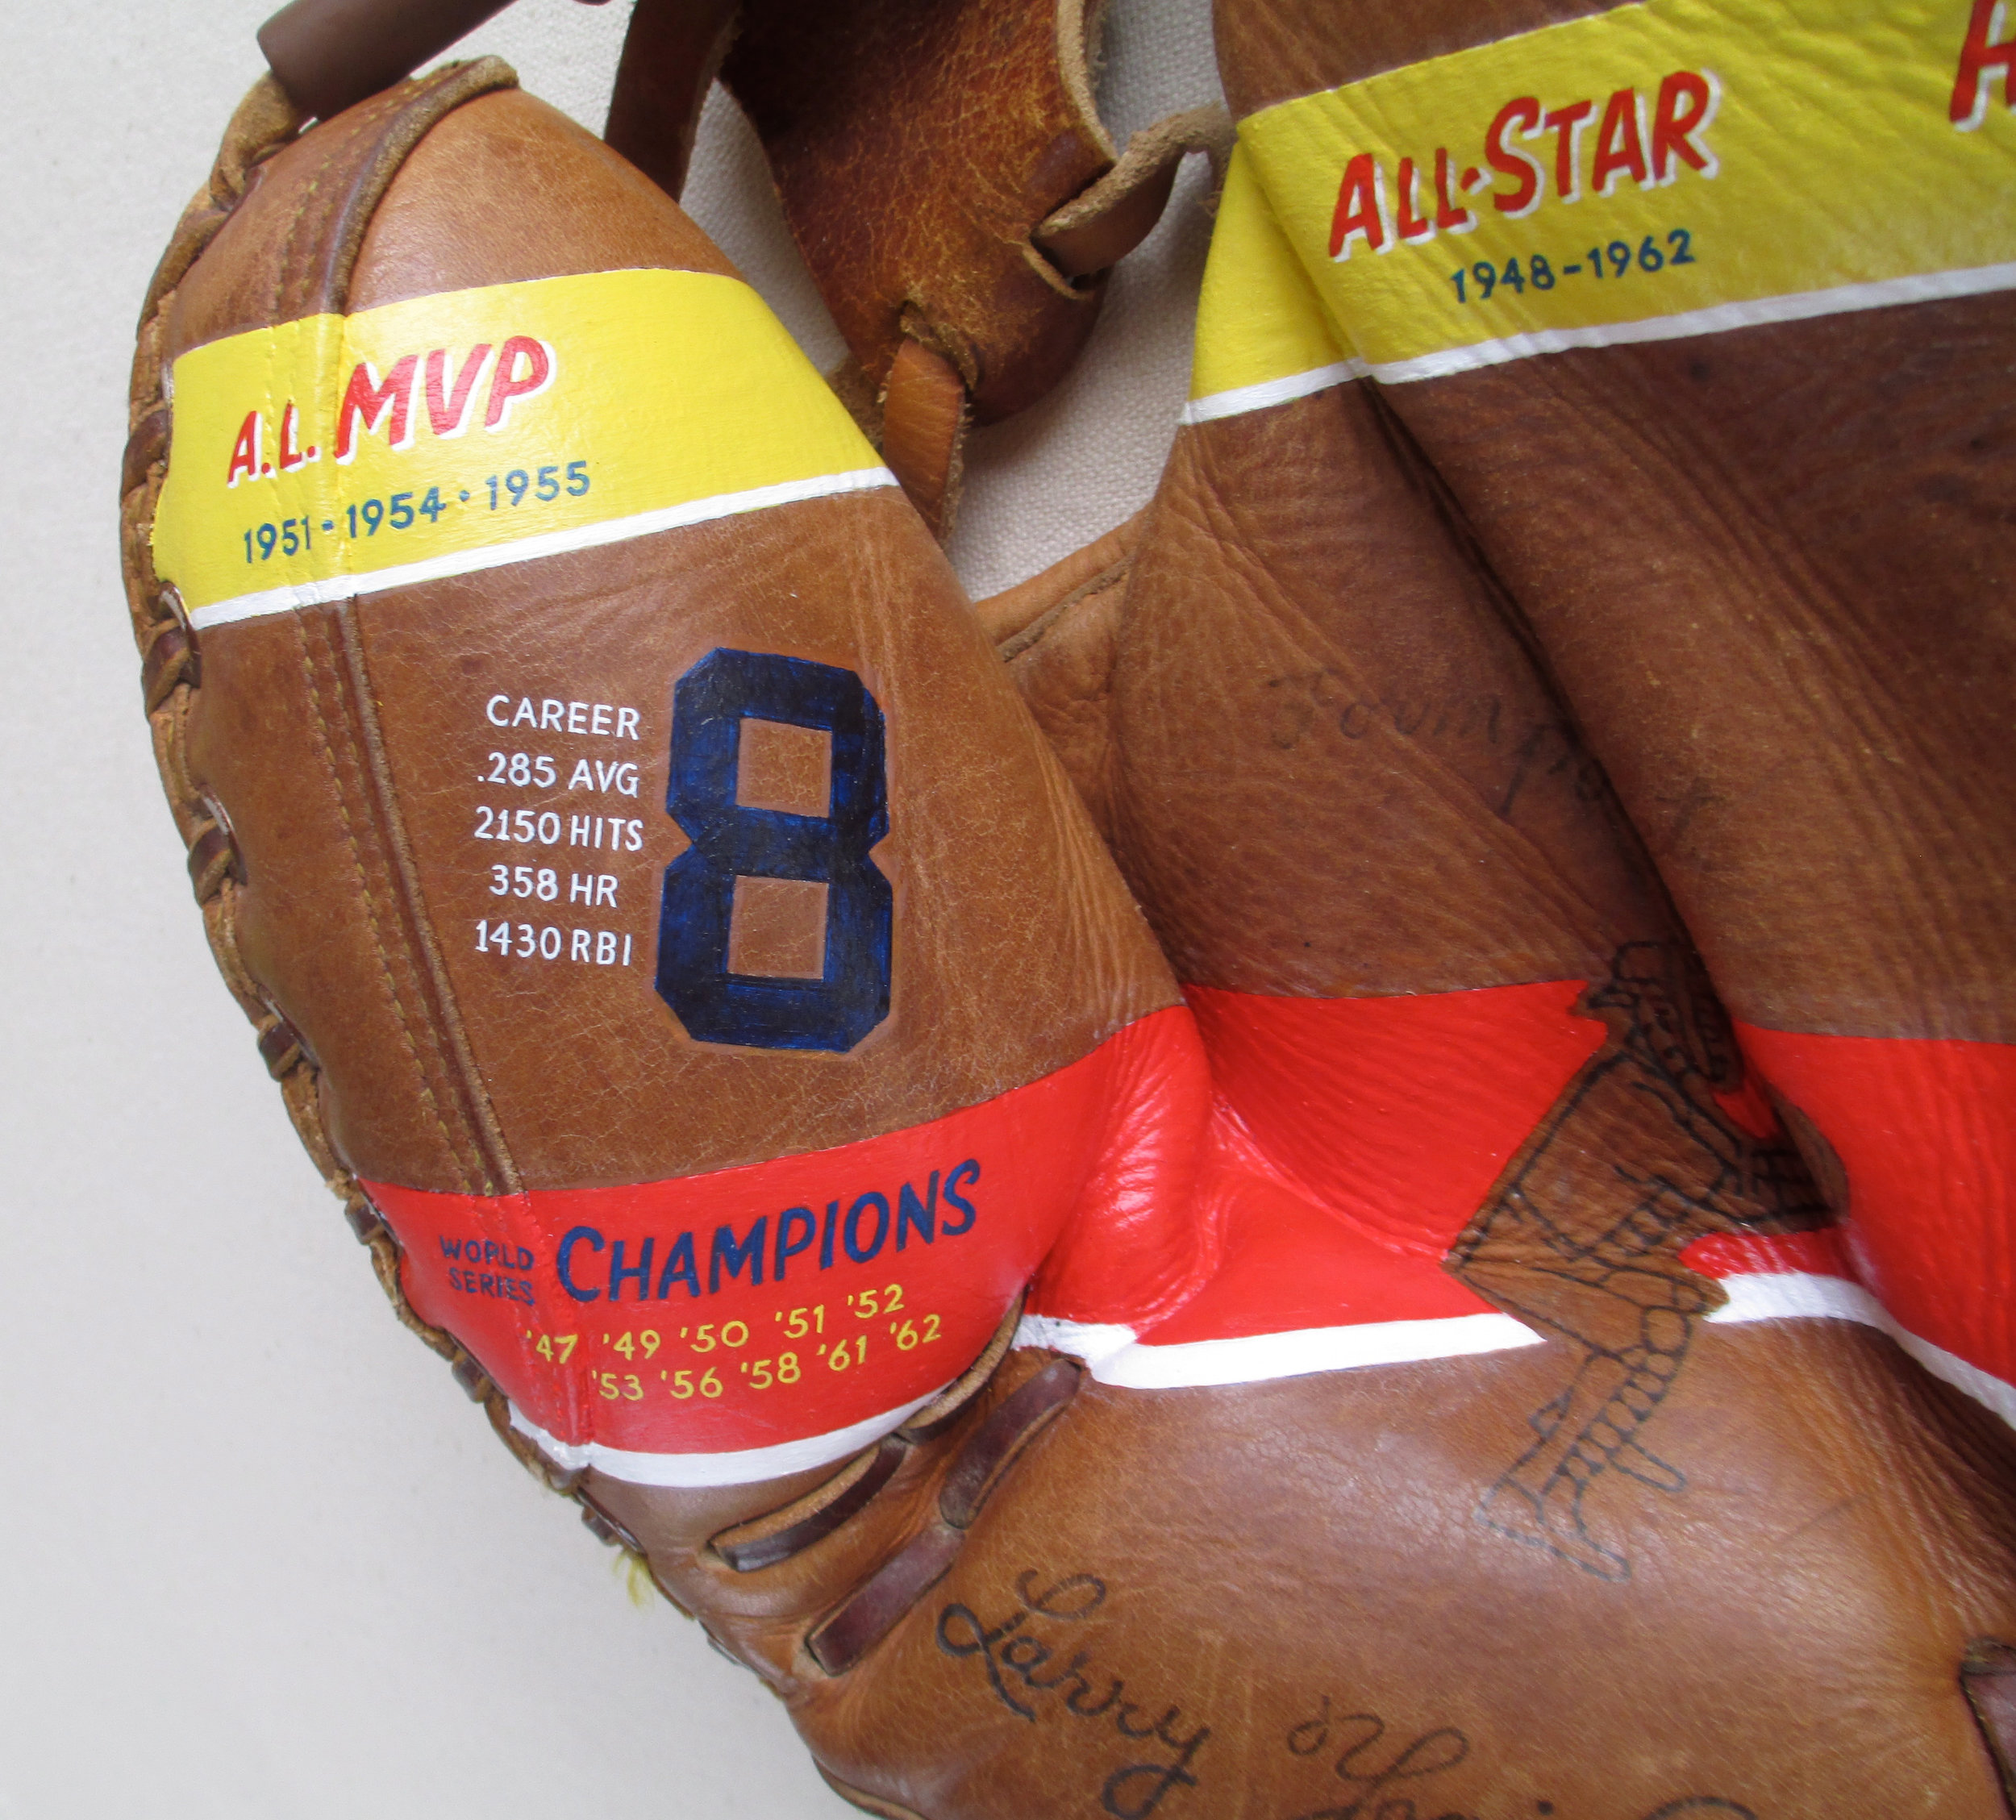 sean-kane-yogi-berra-yankees-8-catchers-mitt-baseball-glove-art.jpg